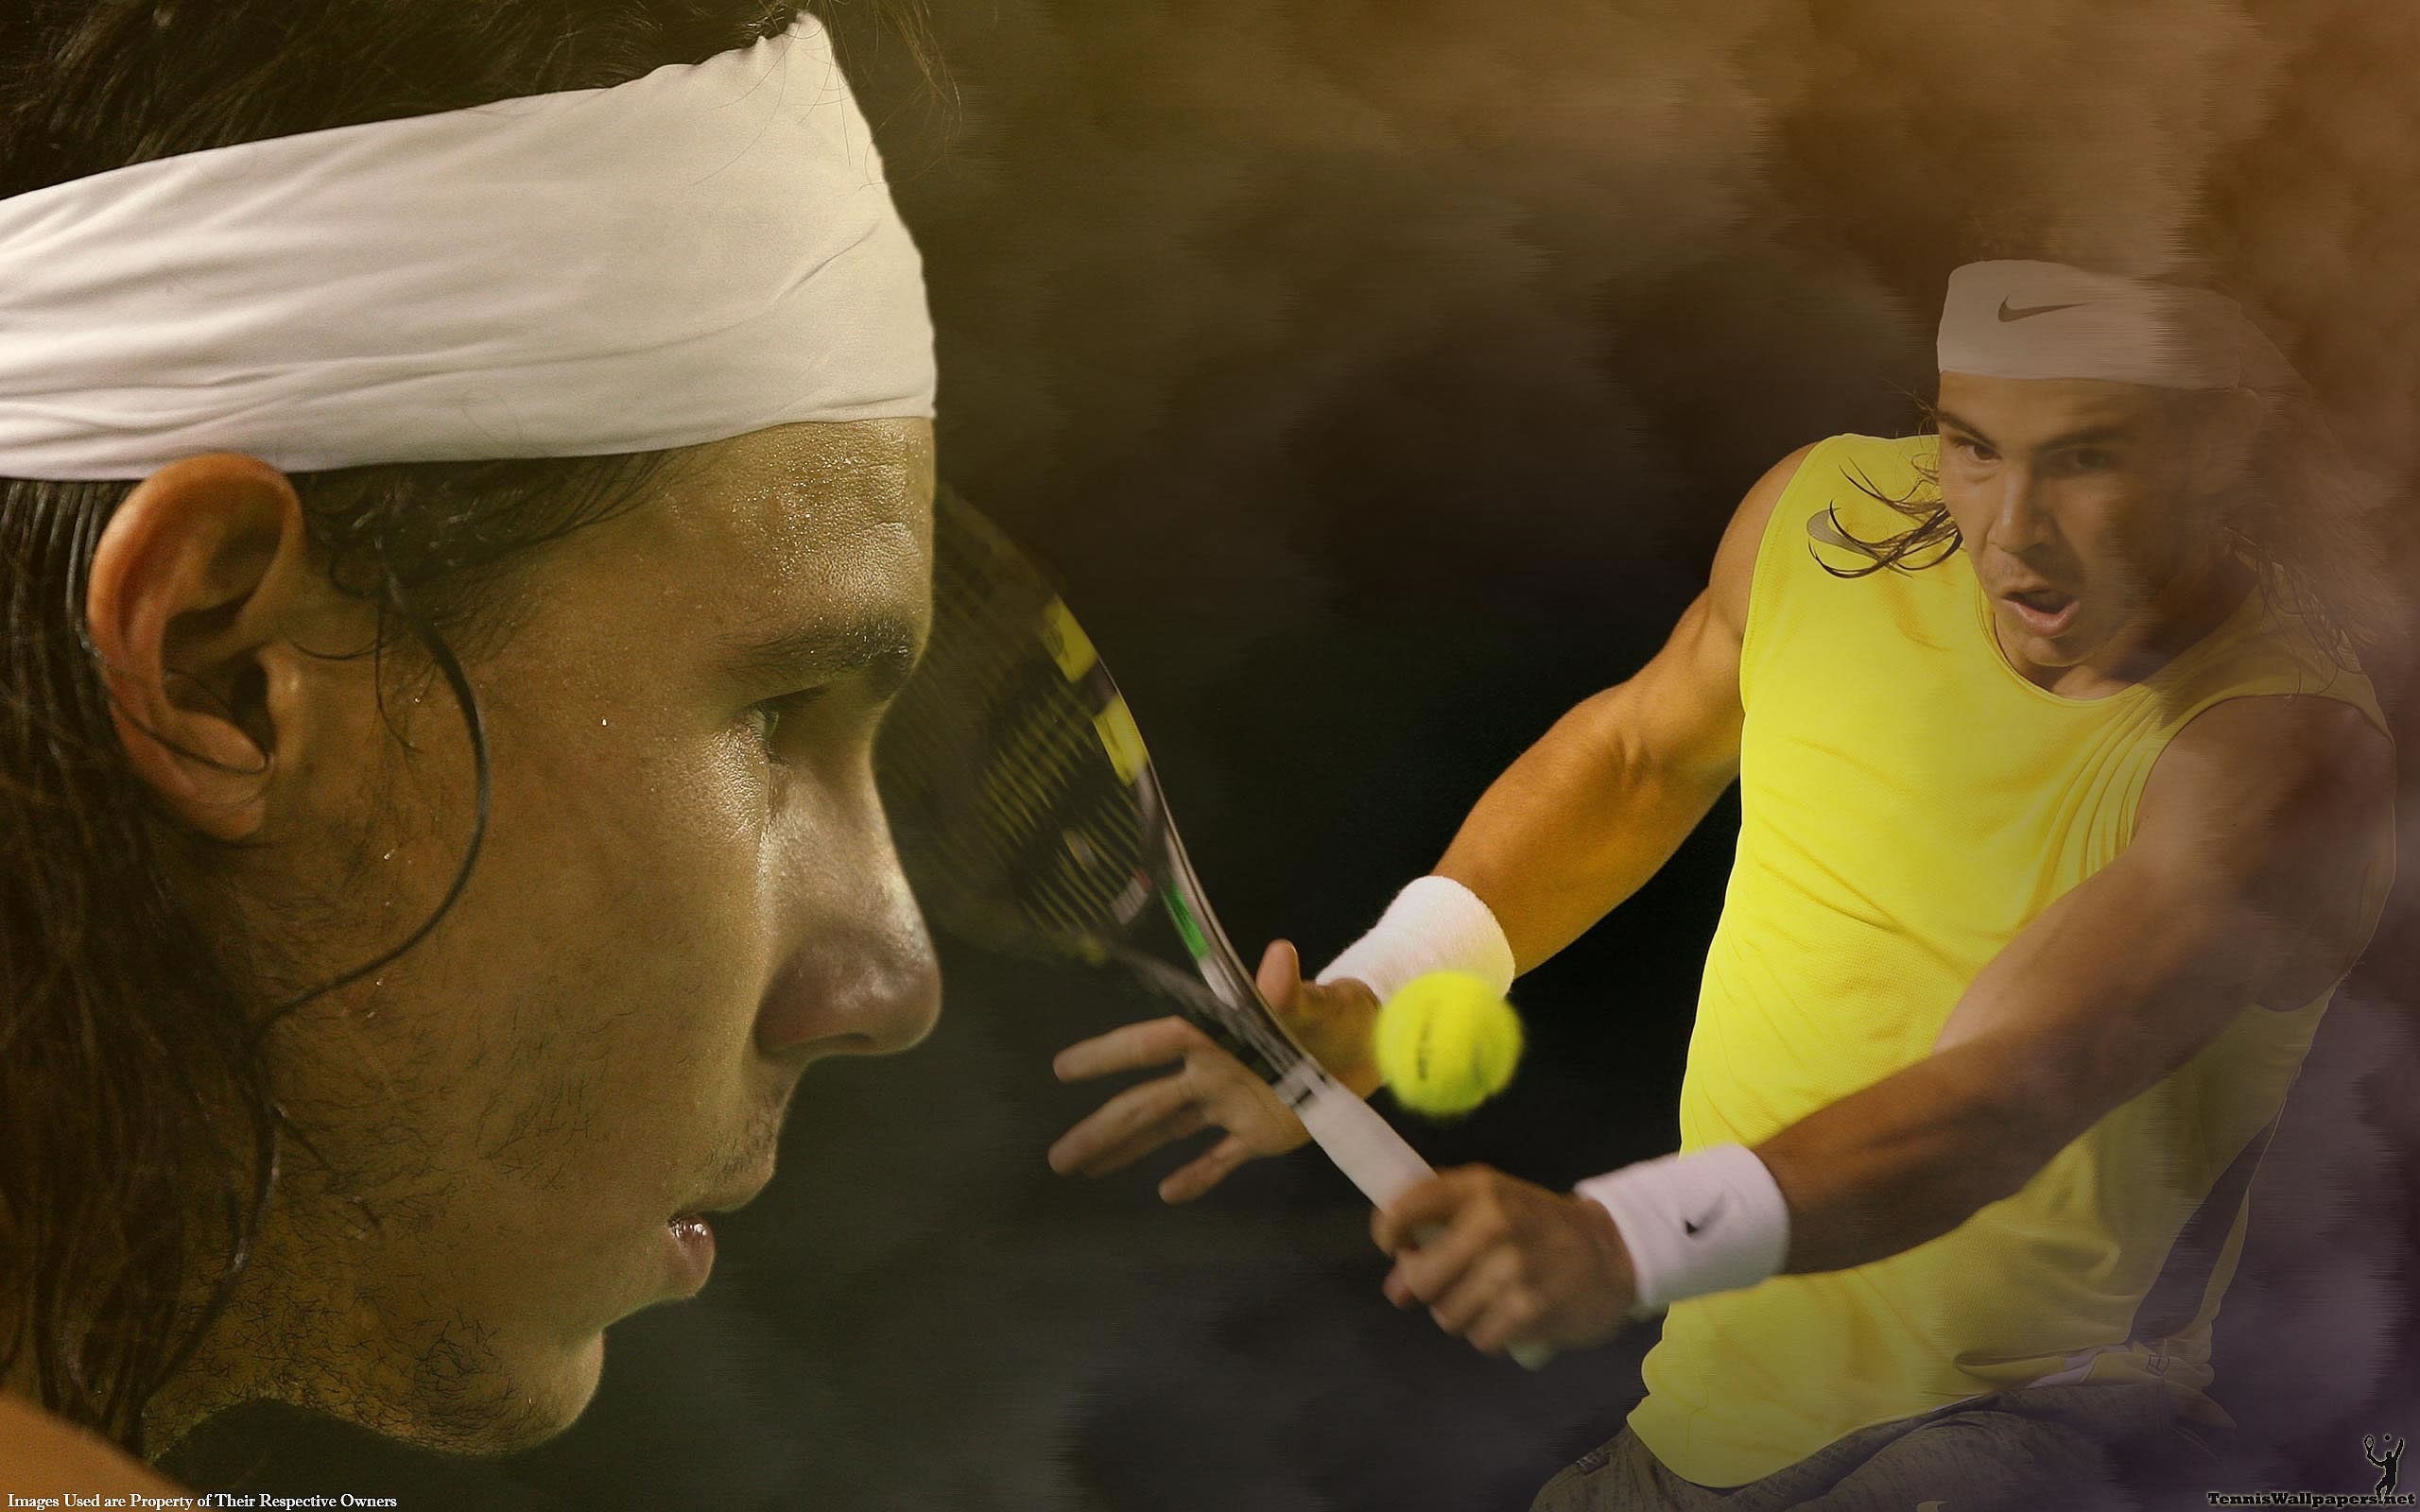 Rafa Nadal Widescreen Wallpaper